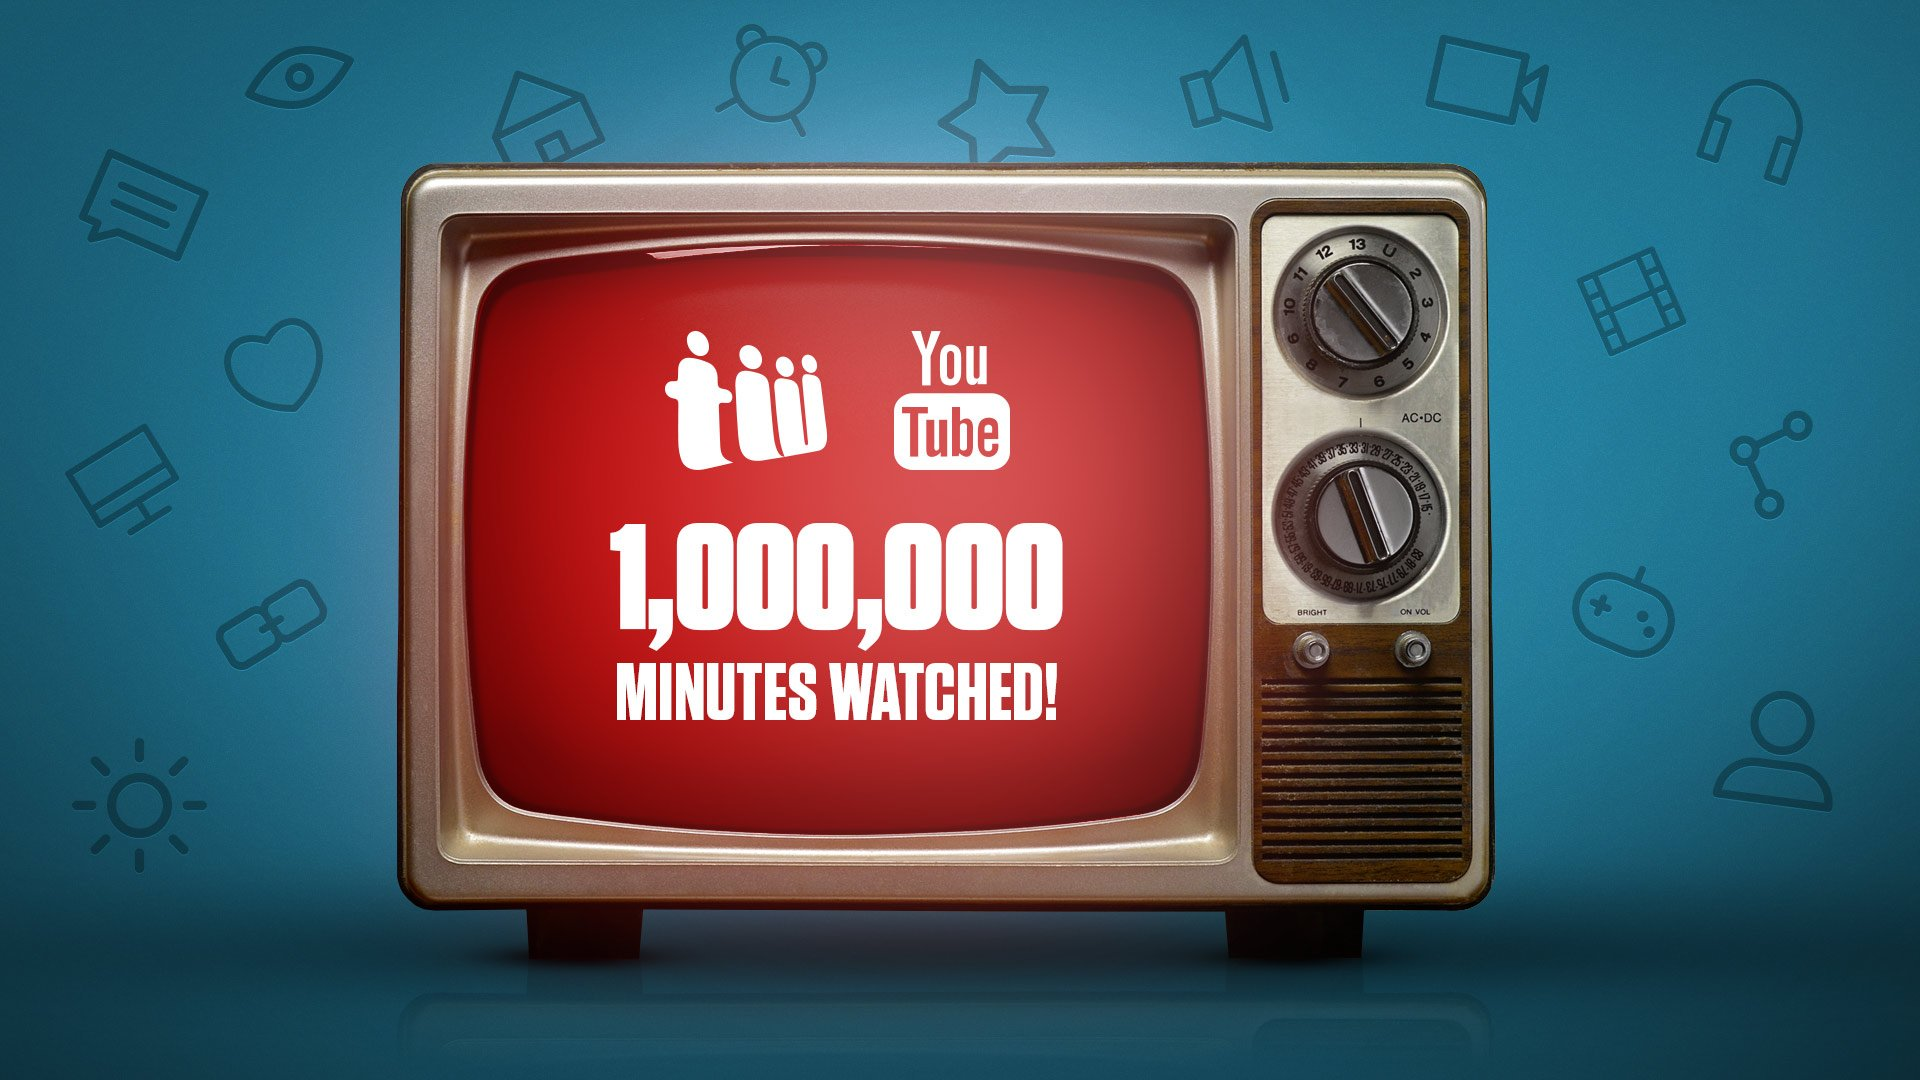 Celebrating 1,000,000 Minutes Watched on Our YouTube Channel | Teamwork.com Blog